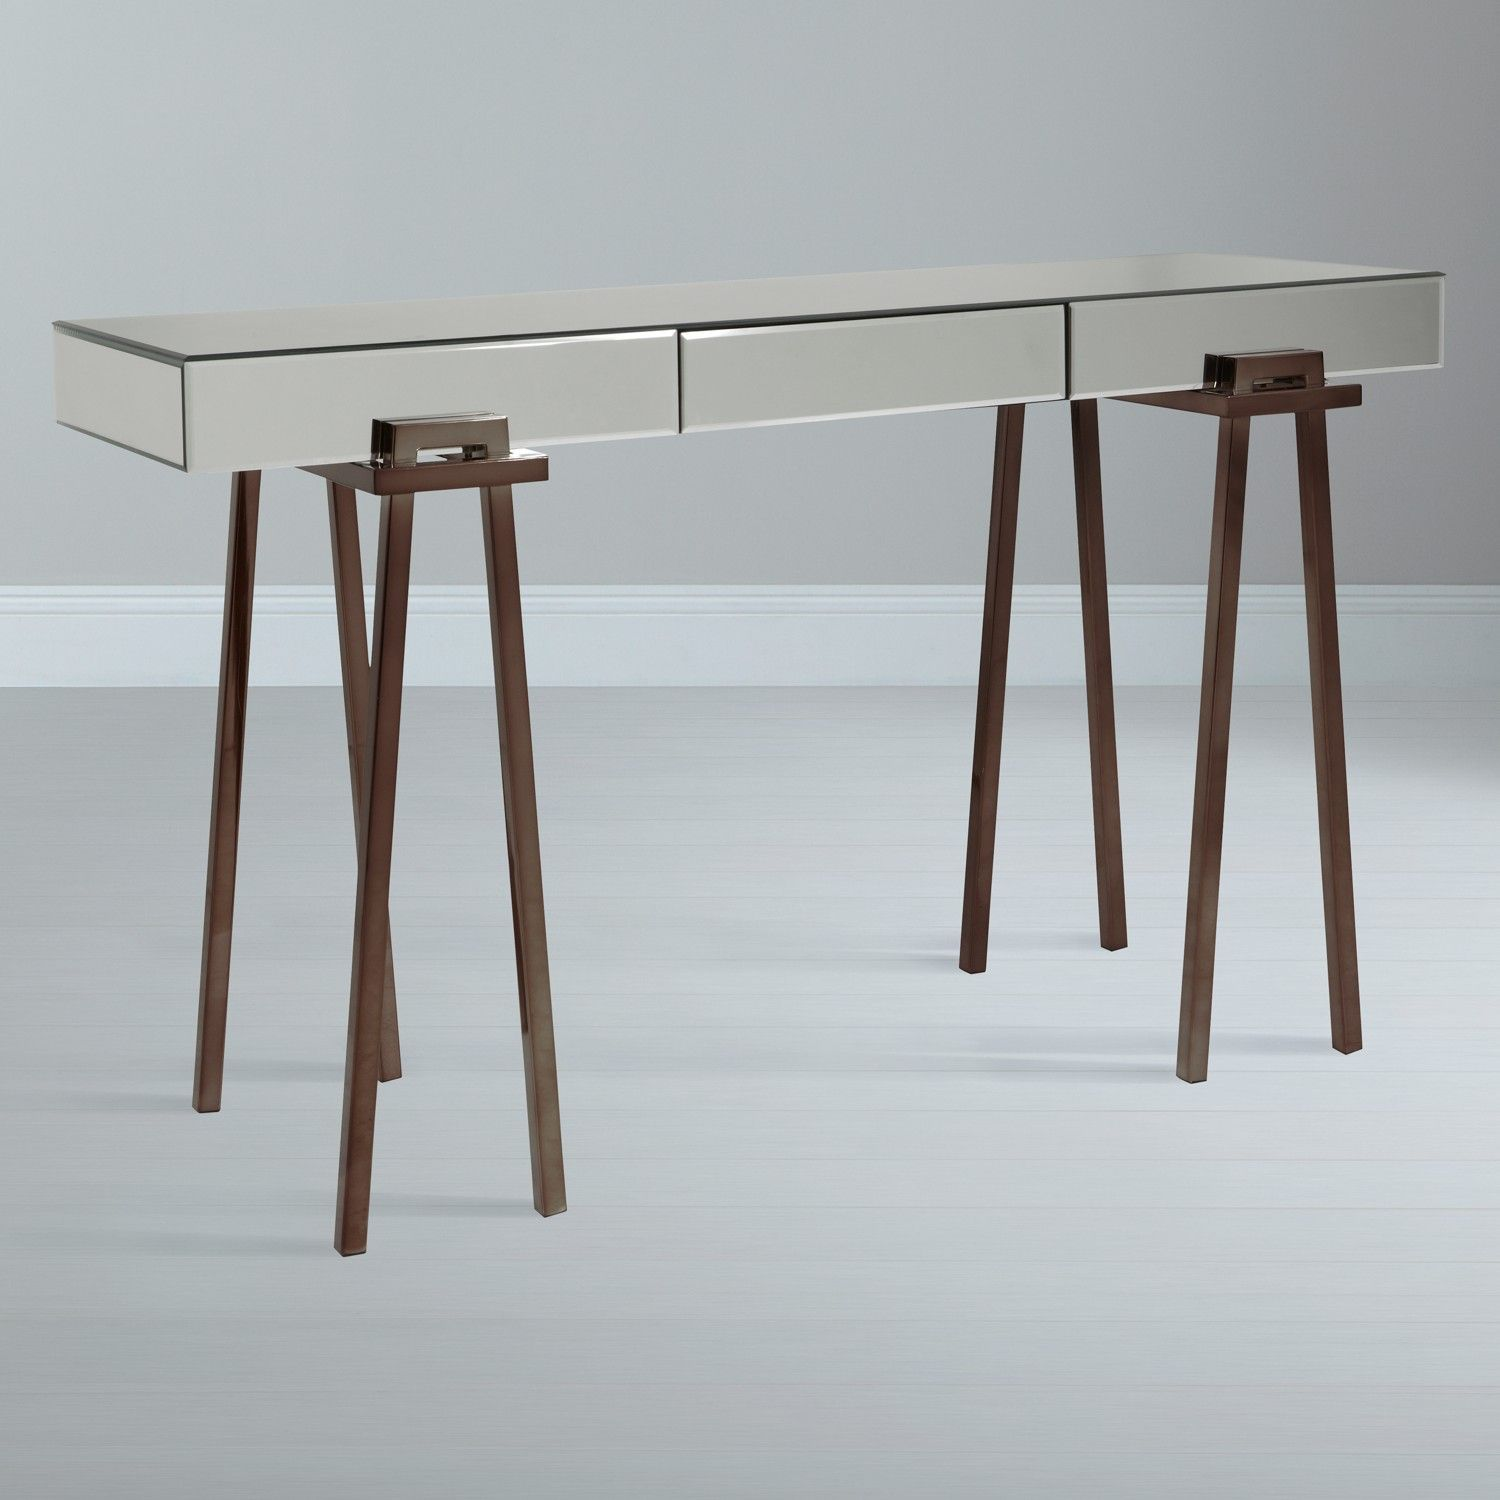 John lewis adelphi console table liron pinterest console john lewis adelphi console table geotapseo Image collections